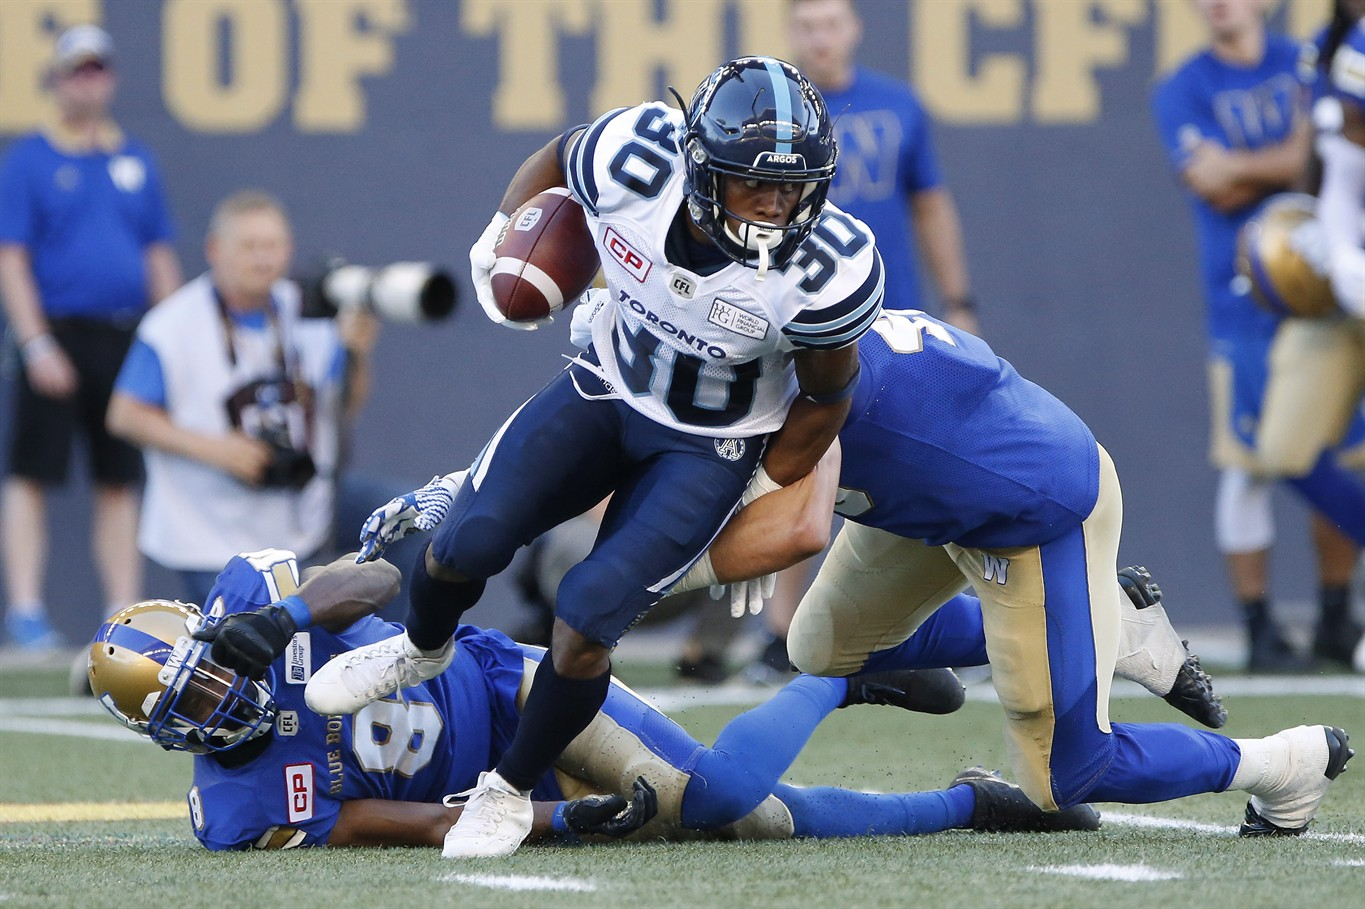 Canadian Football League ends full-contact practices